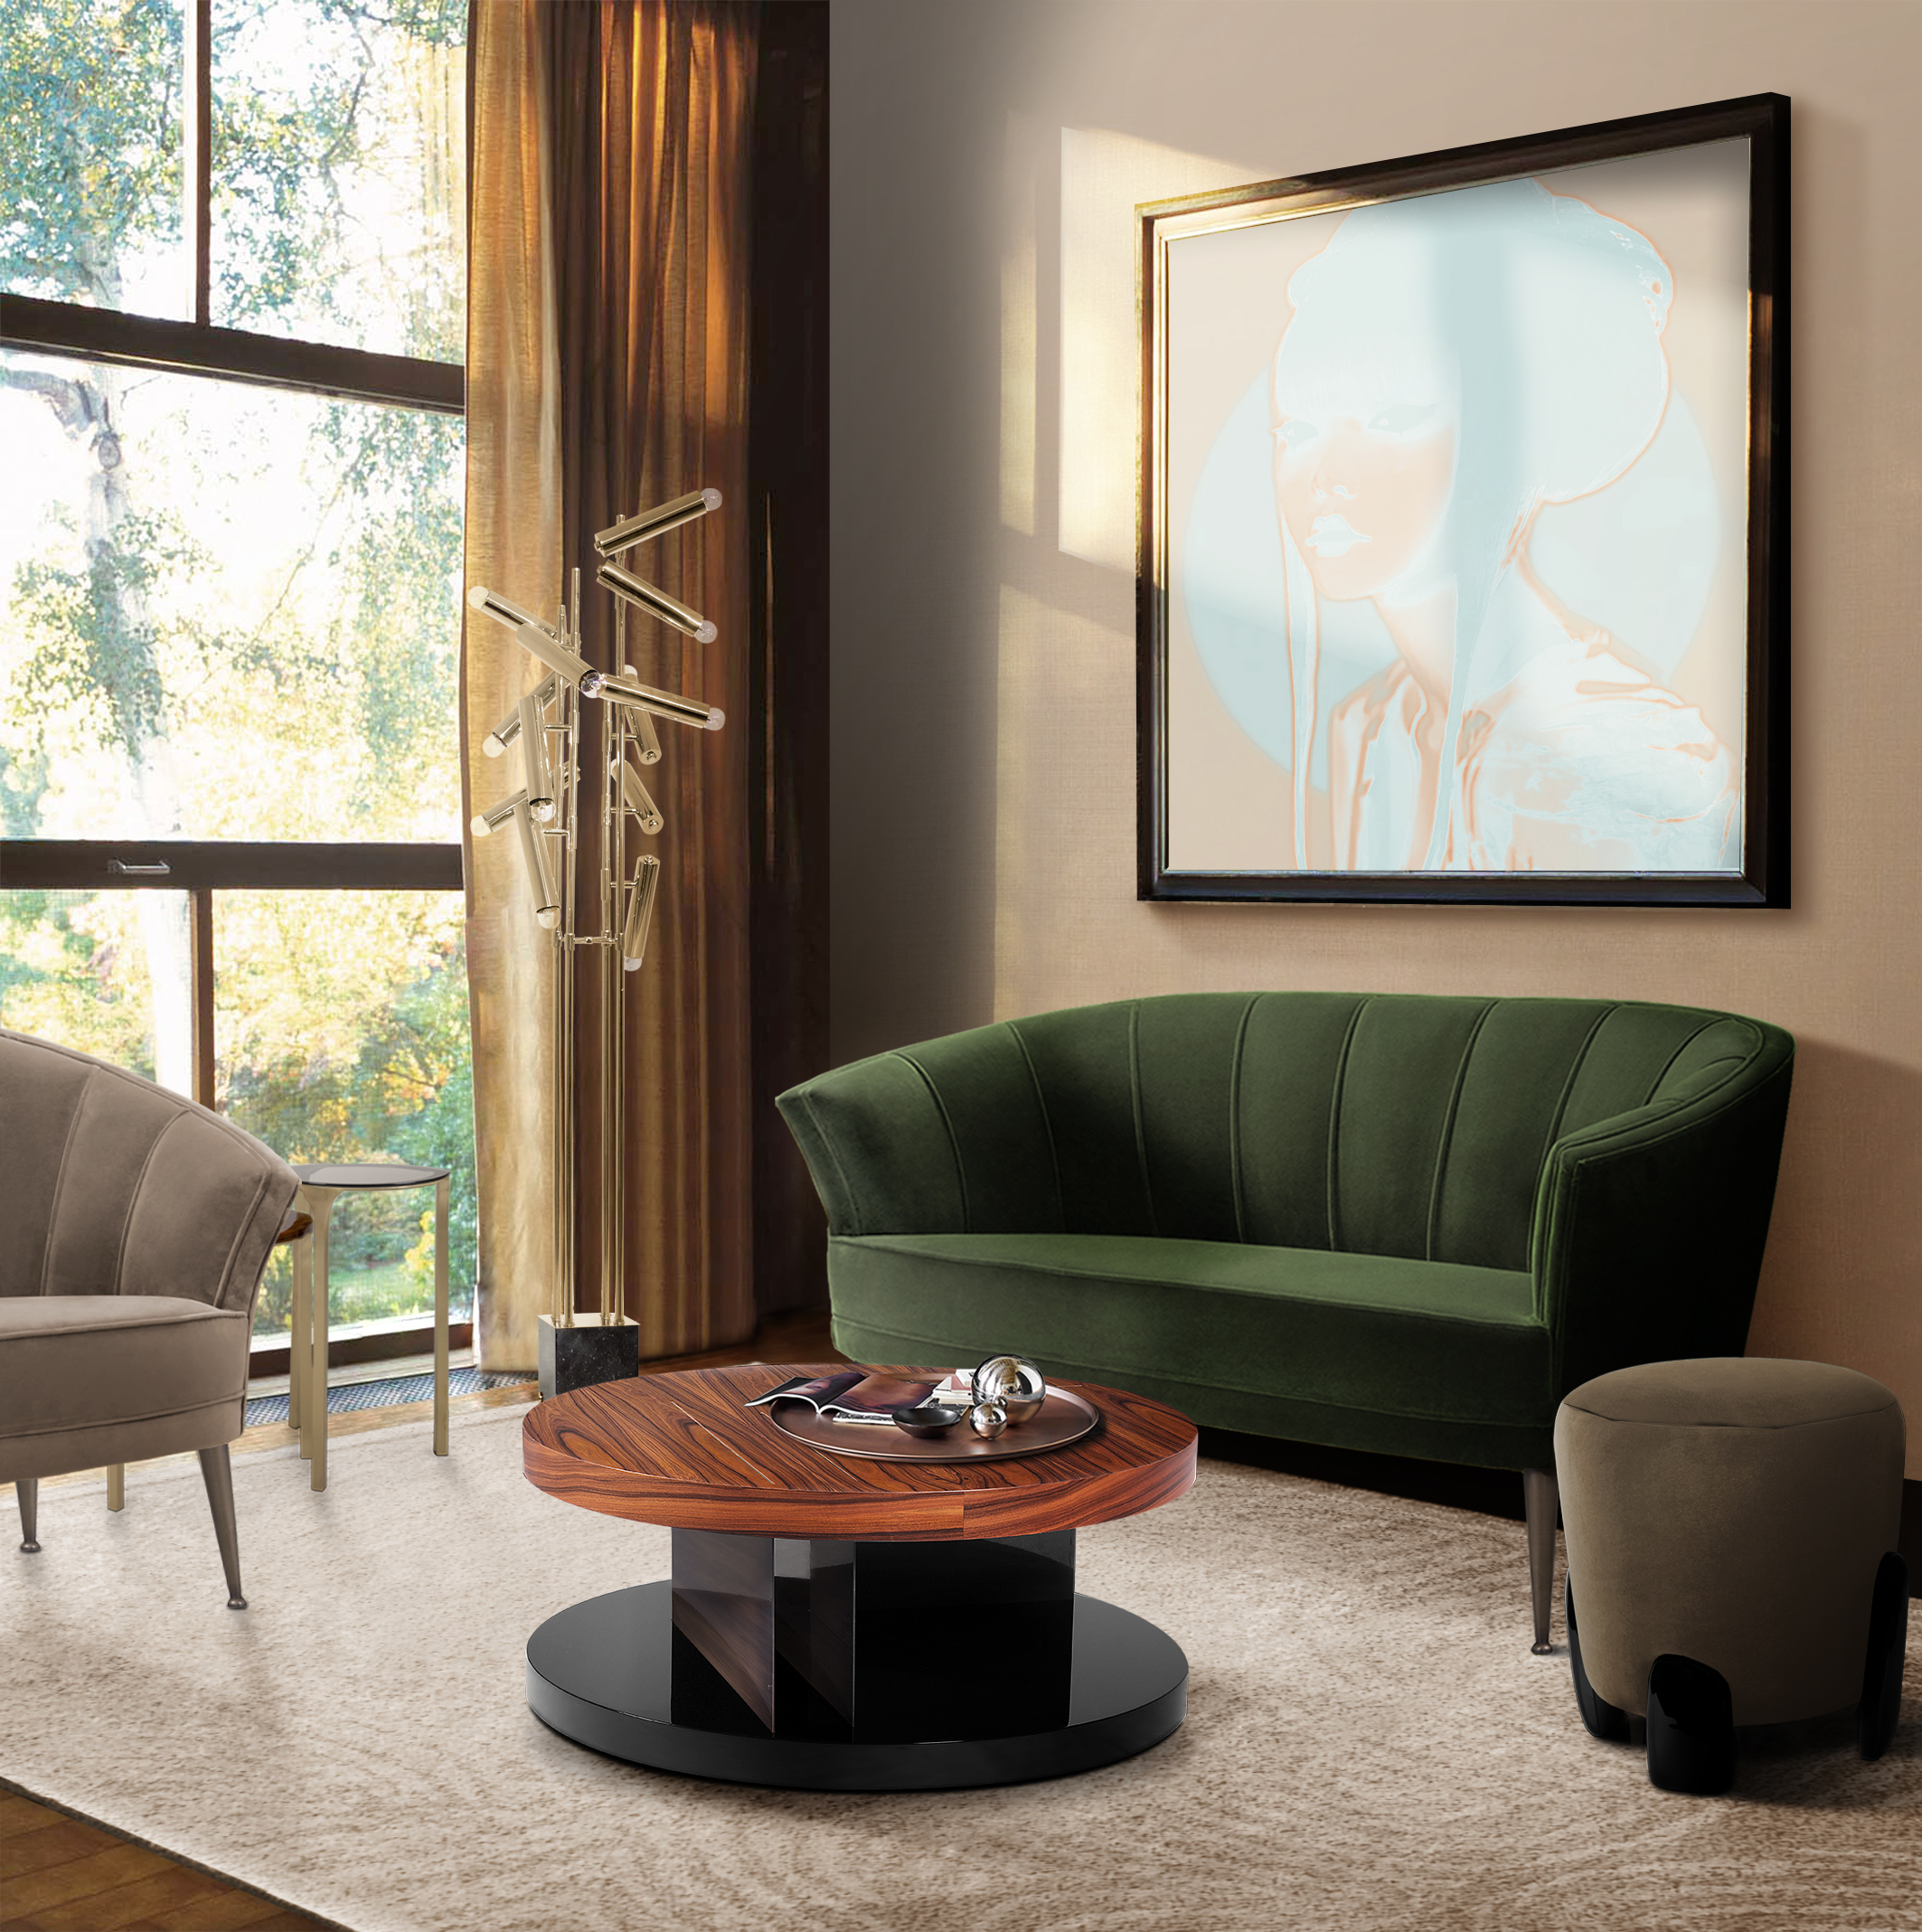 Earth tones: Renew Your Home With These Earth Tone Modern Chairs earth tones Earth tones: Renew Your Home With These Earth Tone Modern Chairs Earth tones Renew Your Home With These Earth Tone Modern Chairs